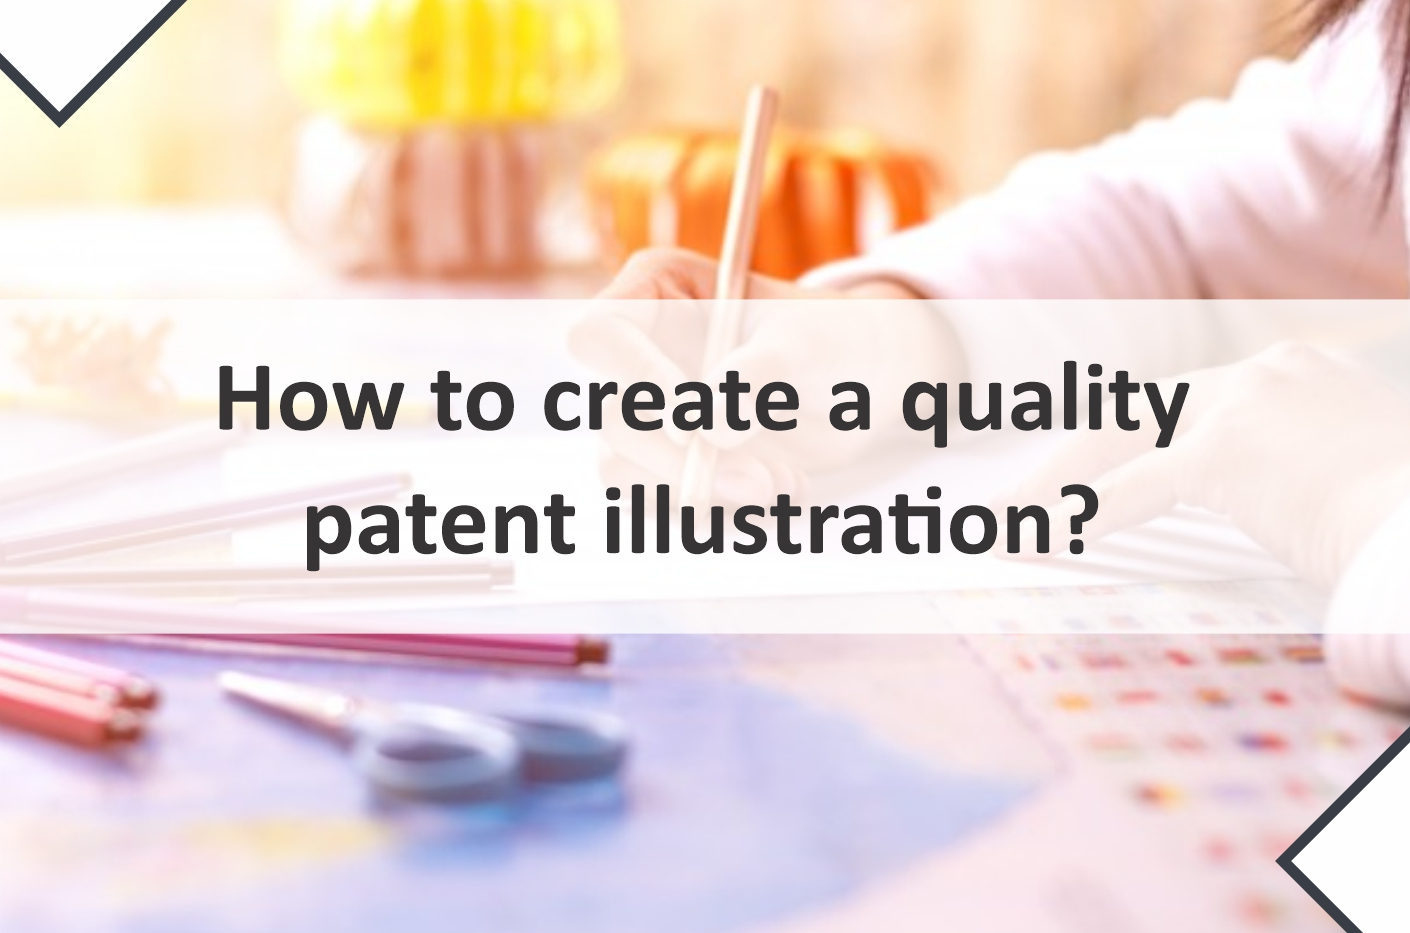 How to create a quality patent illustration?